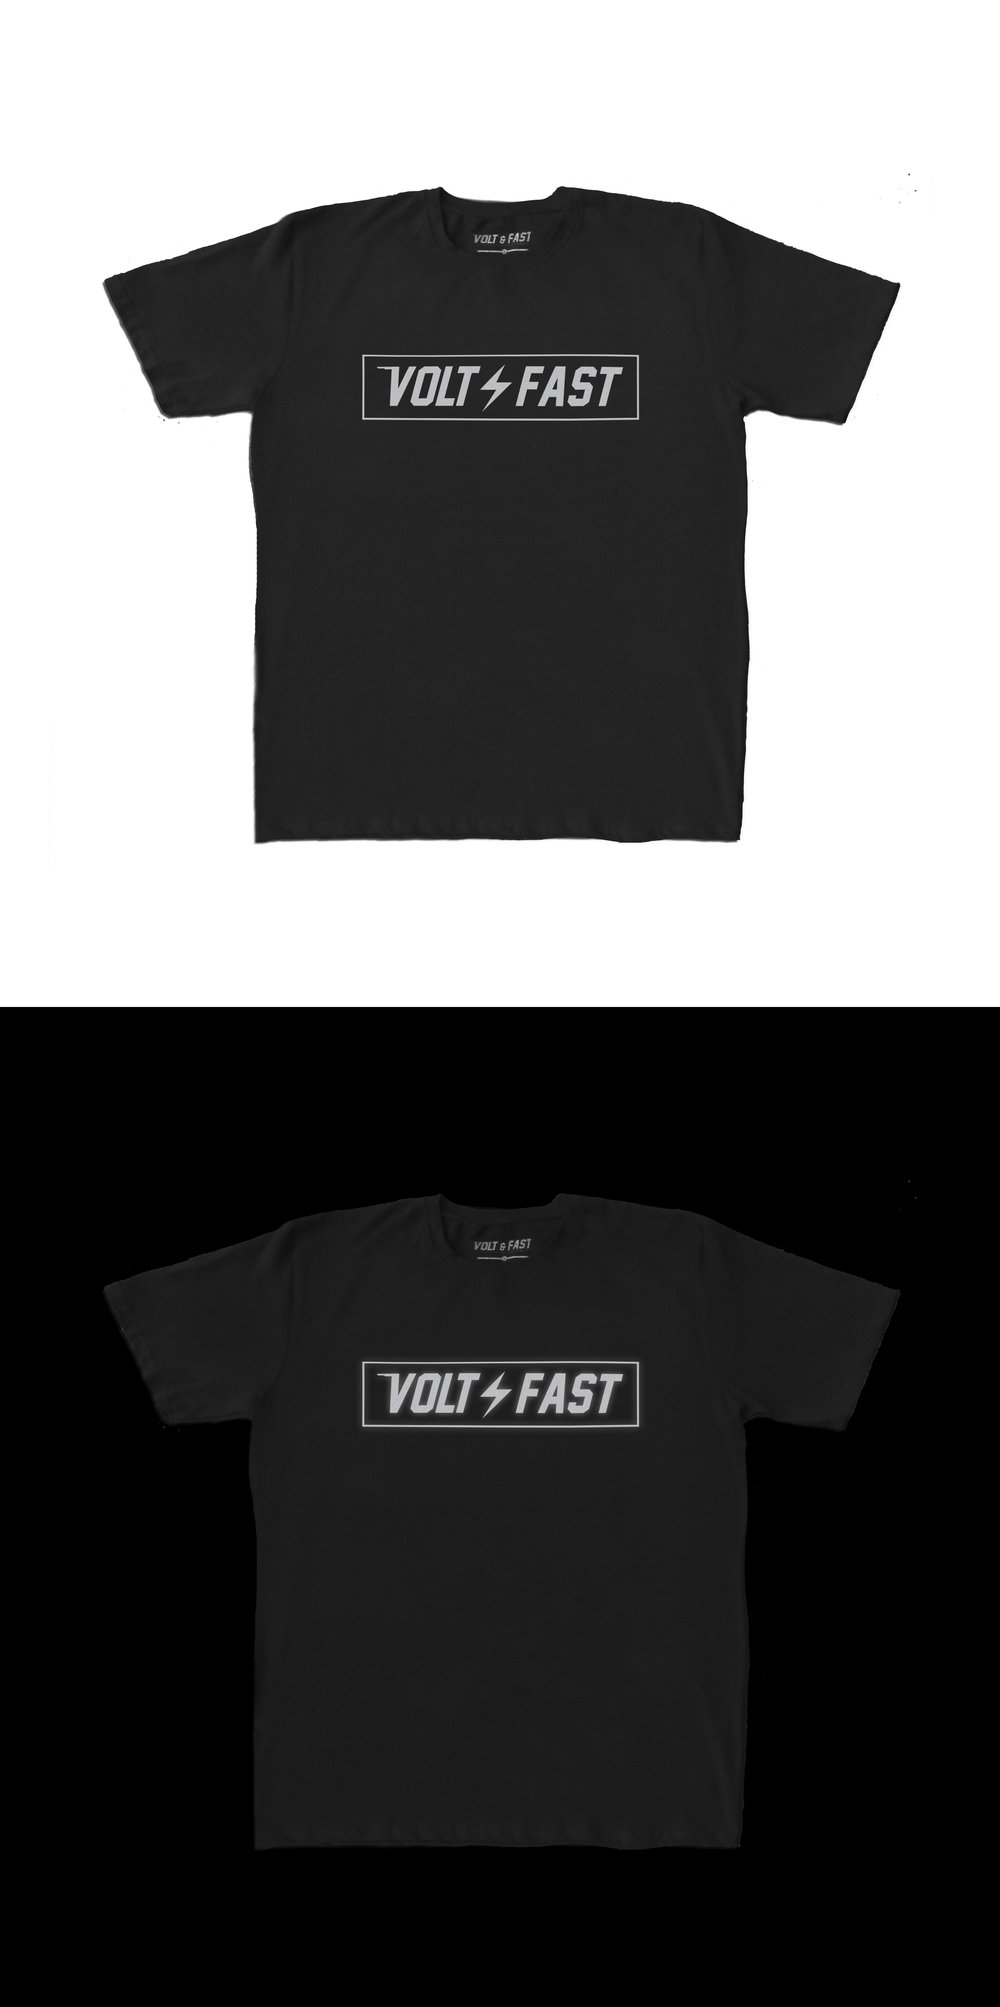 BOX LOGO   Basic Collection  Features:  - Cotton spandex fabric - Printed with reflective ink - Reflective label - Regular fit  Rp 250.000